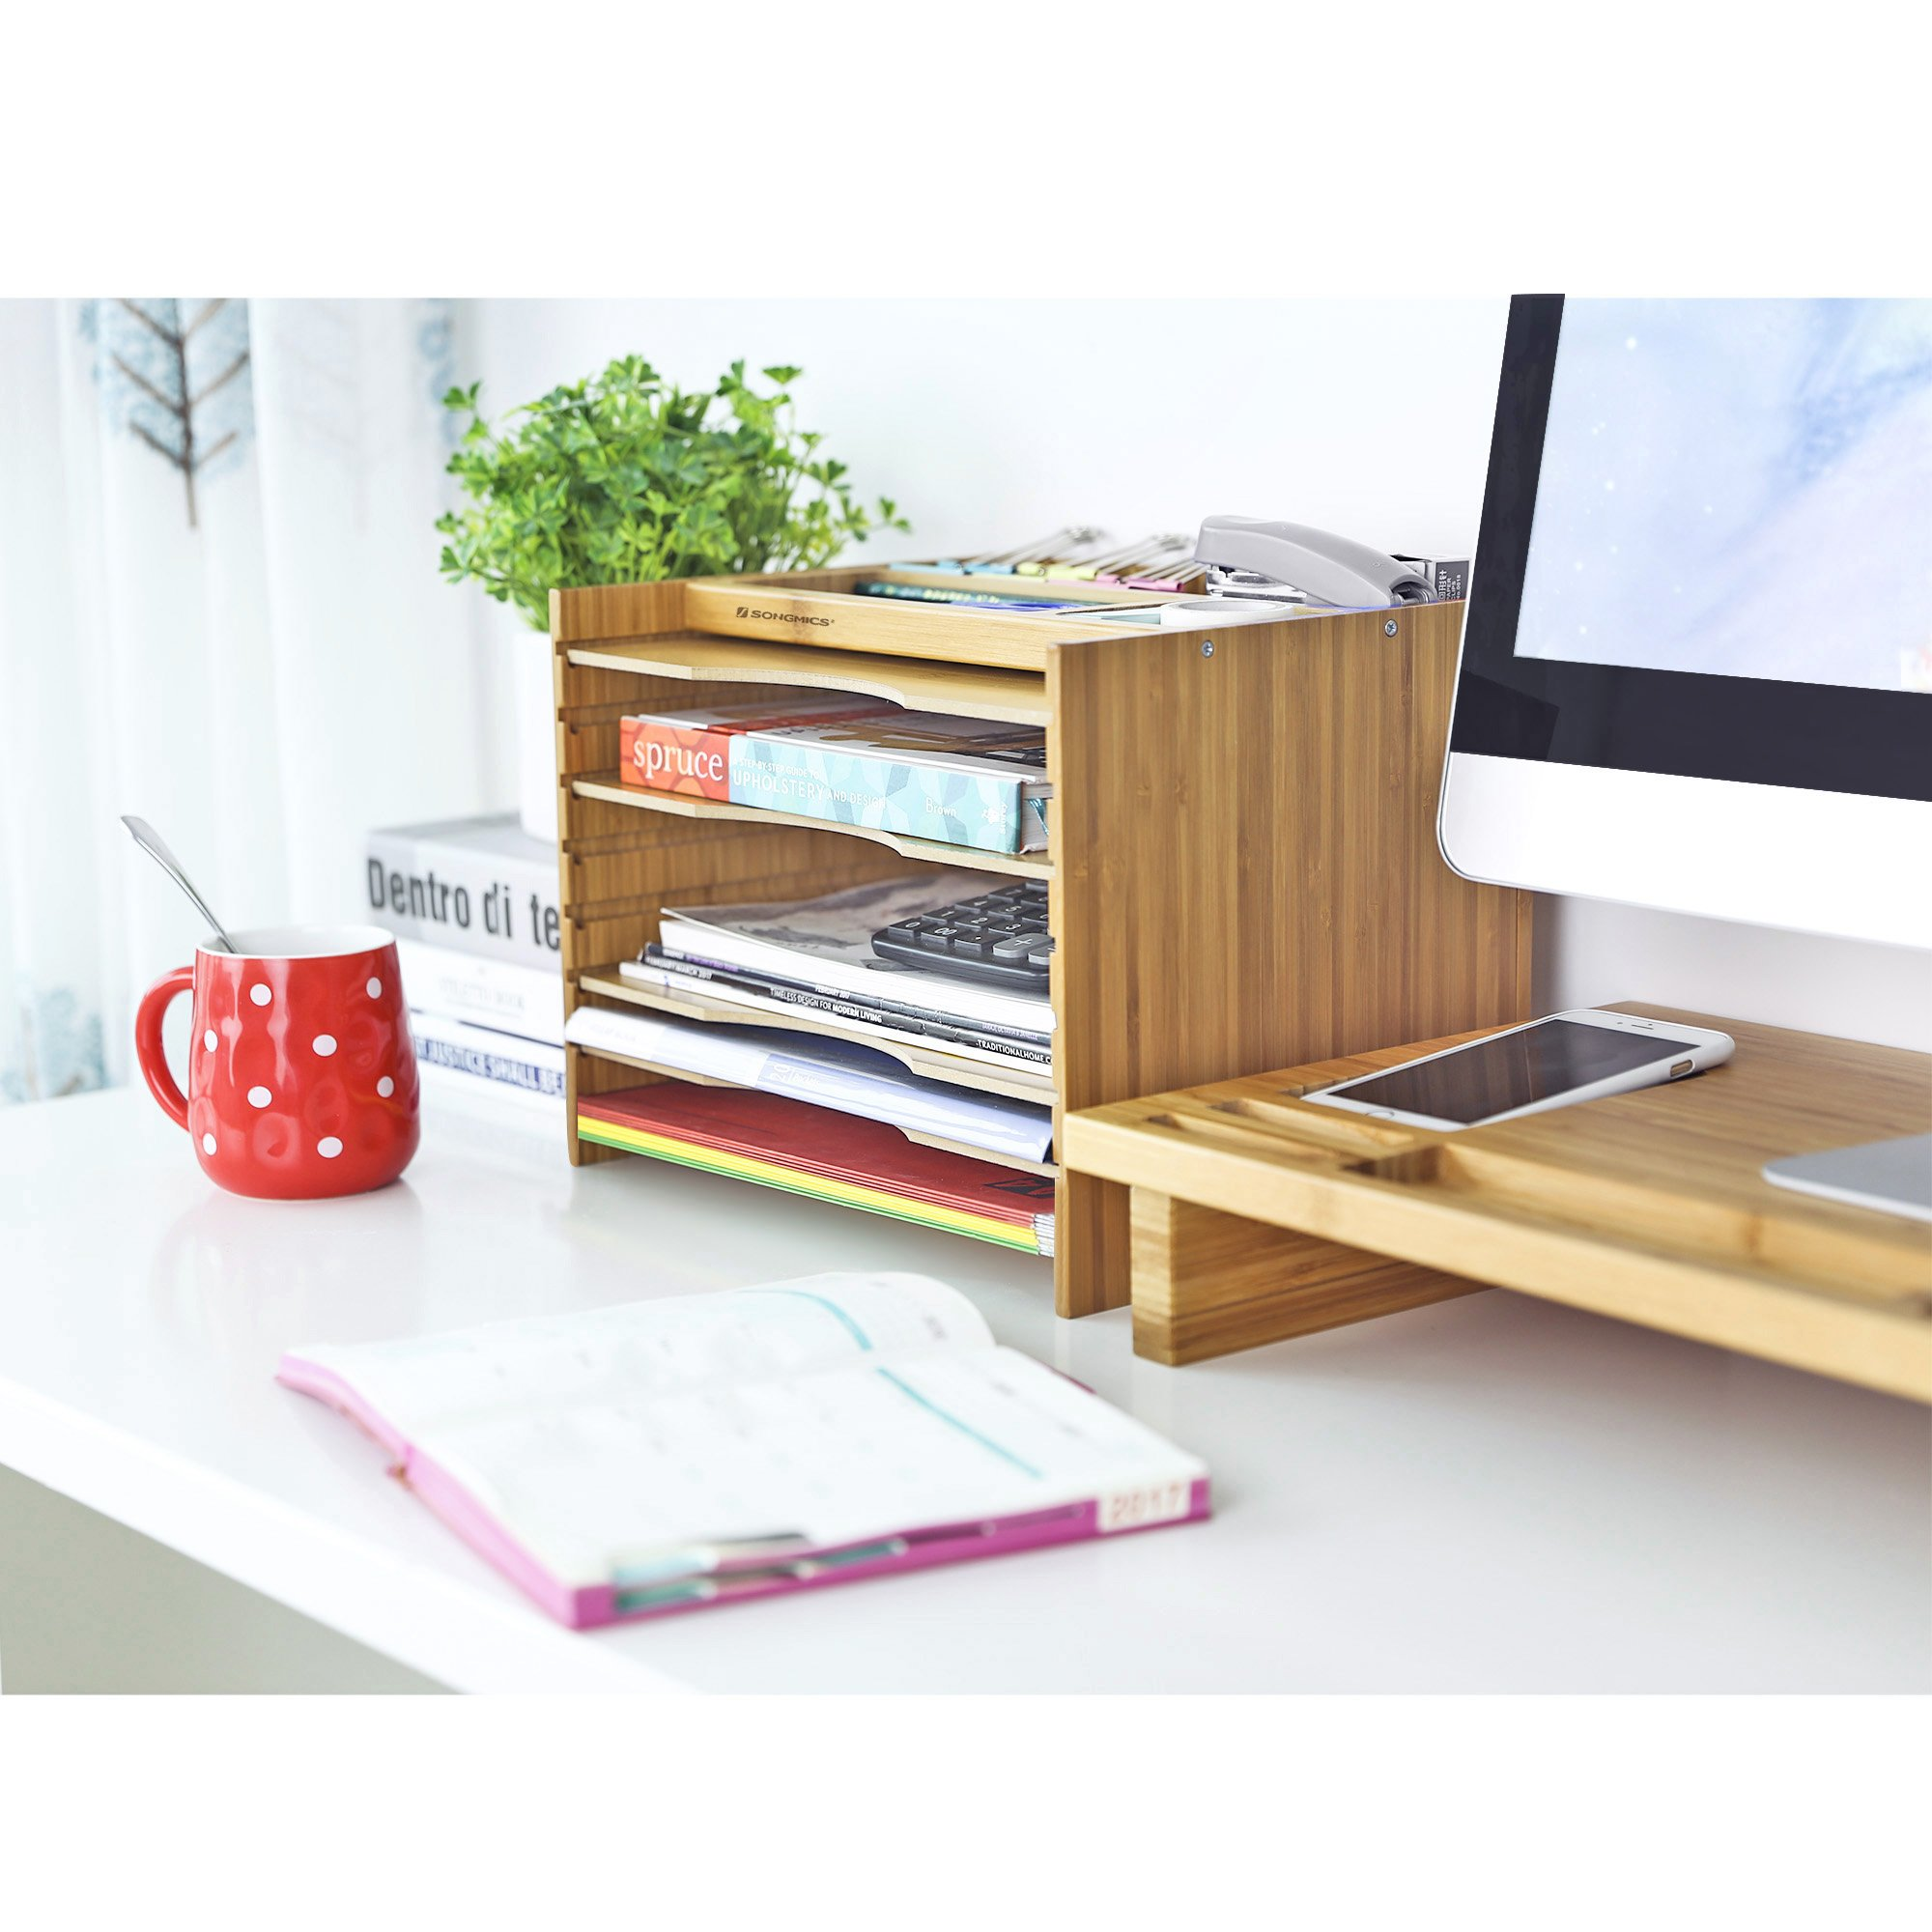 SONGMICS Bamboo File Organizer Paper Sorter with 5 Adjustable Shelves Top Storage Compartments Natural UOFS44Y by SONGMICS (Image #2)